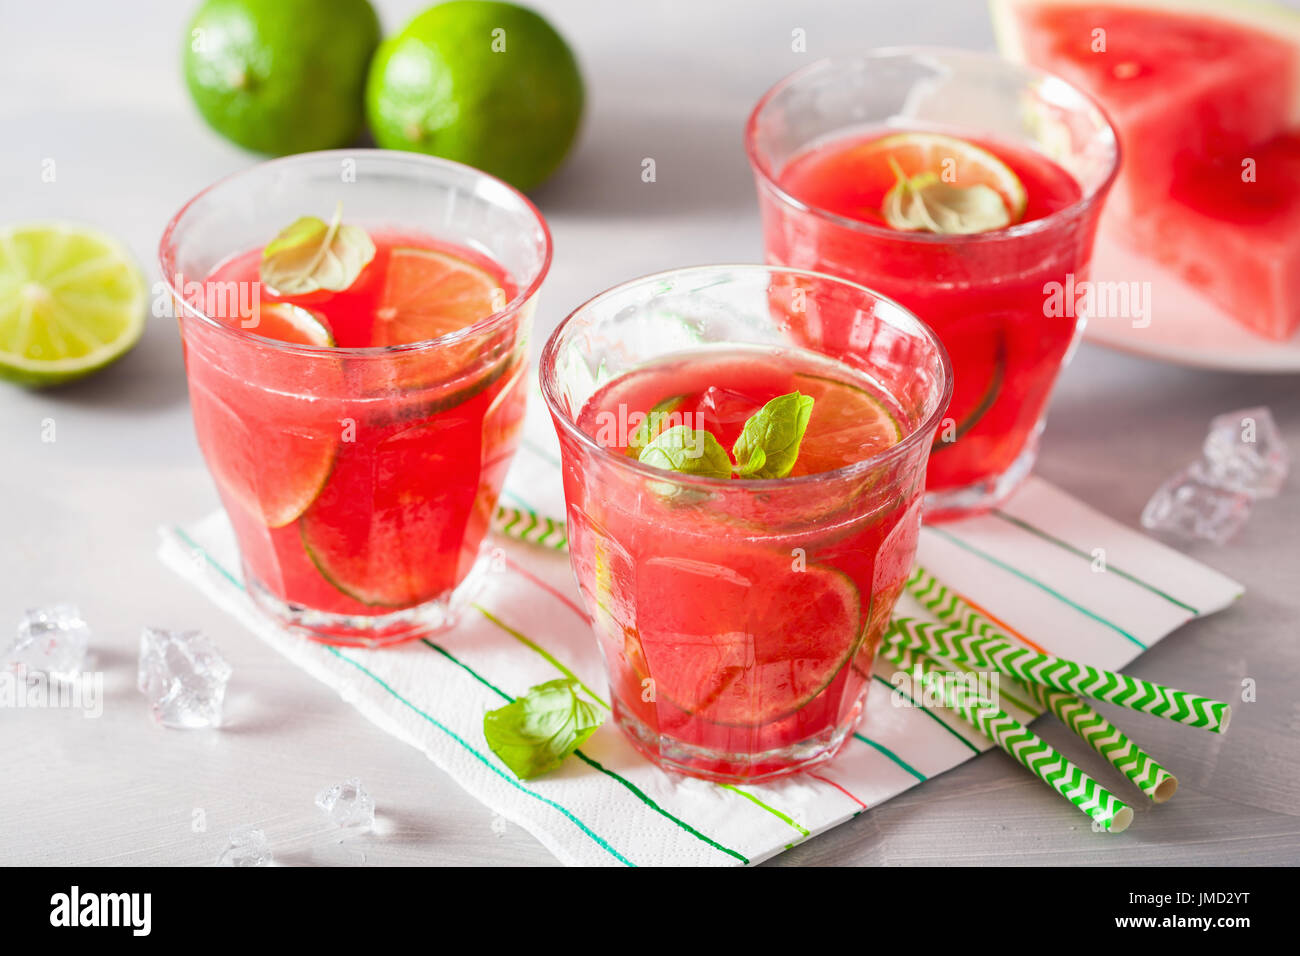 watermelon lemonade with lime and mint, summer refreshing drink - Stock Image